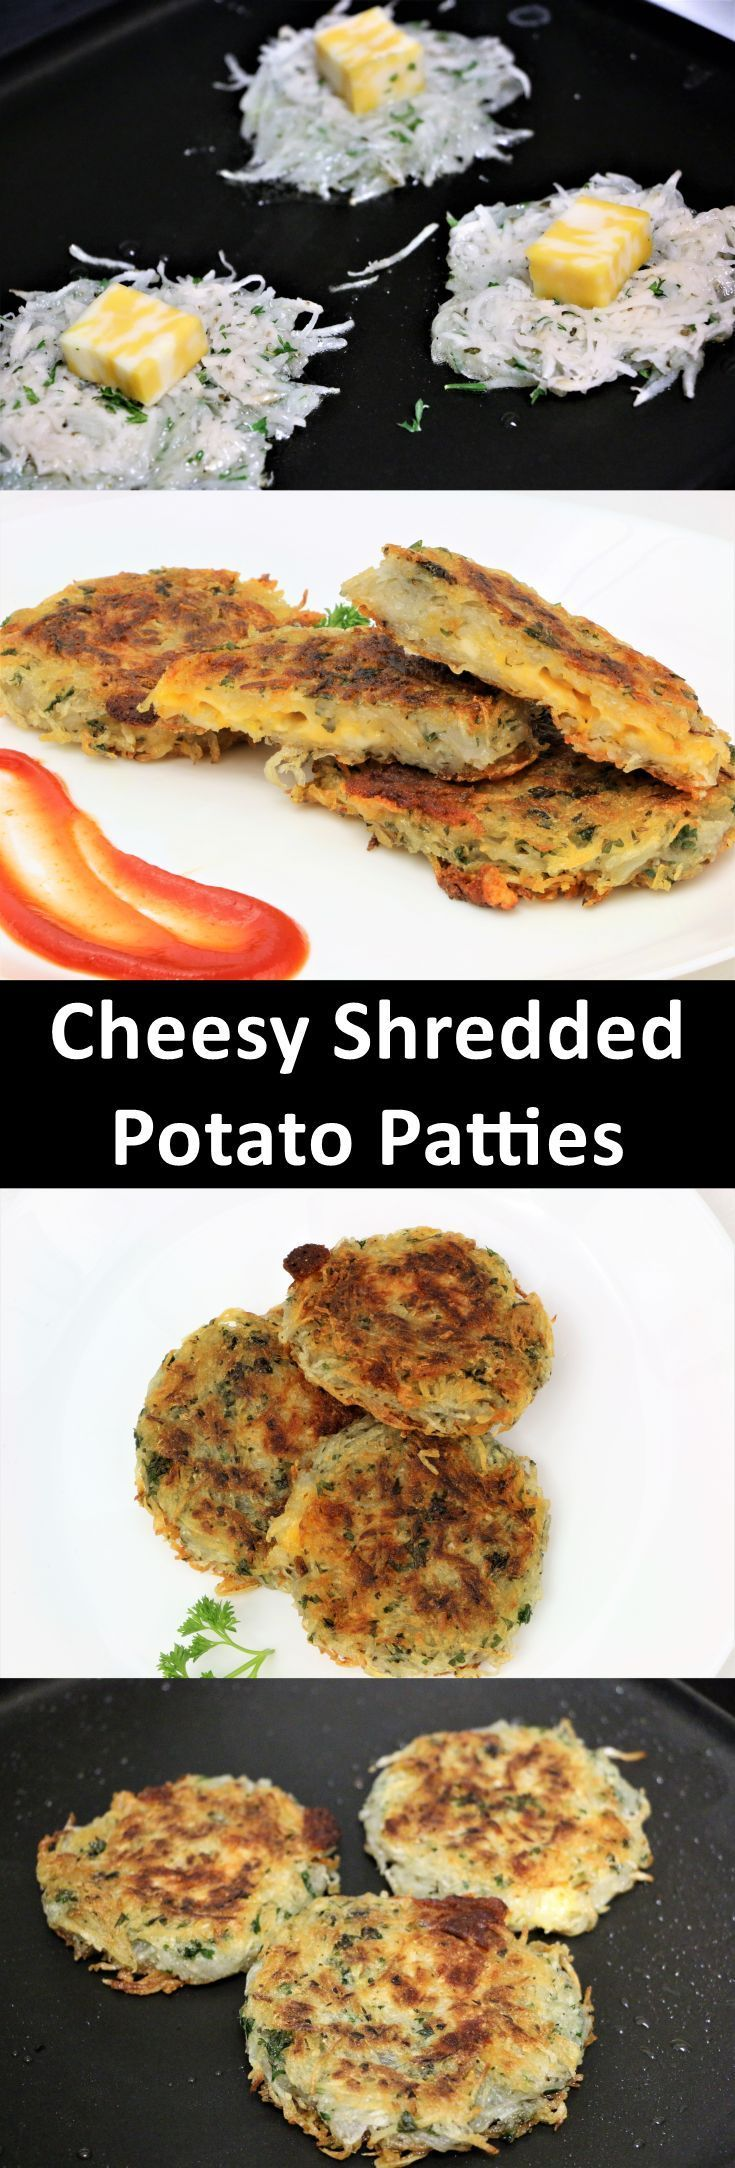 Cheesy Shredded Potato Patties are one of the easiest version for snacks. These are crispy on the outside and fluffy and creamy on the inside. By removing excess moisture and cooking them on a medium to low flame , you will get extra crunchy and golden patty. This is ready in no time. You can also make this for fasting like Navaratra Vrat, ekadashi, Janmashami. Instead of corn flour, add arrowroot flour if you are making it for vrat.